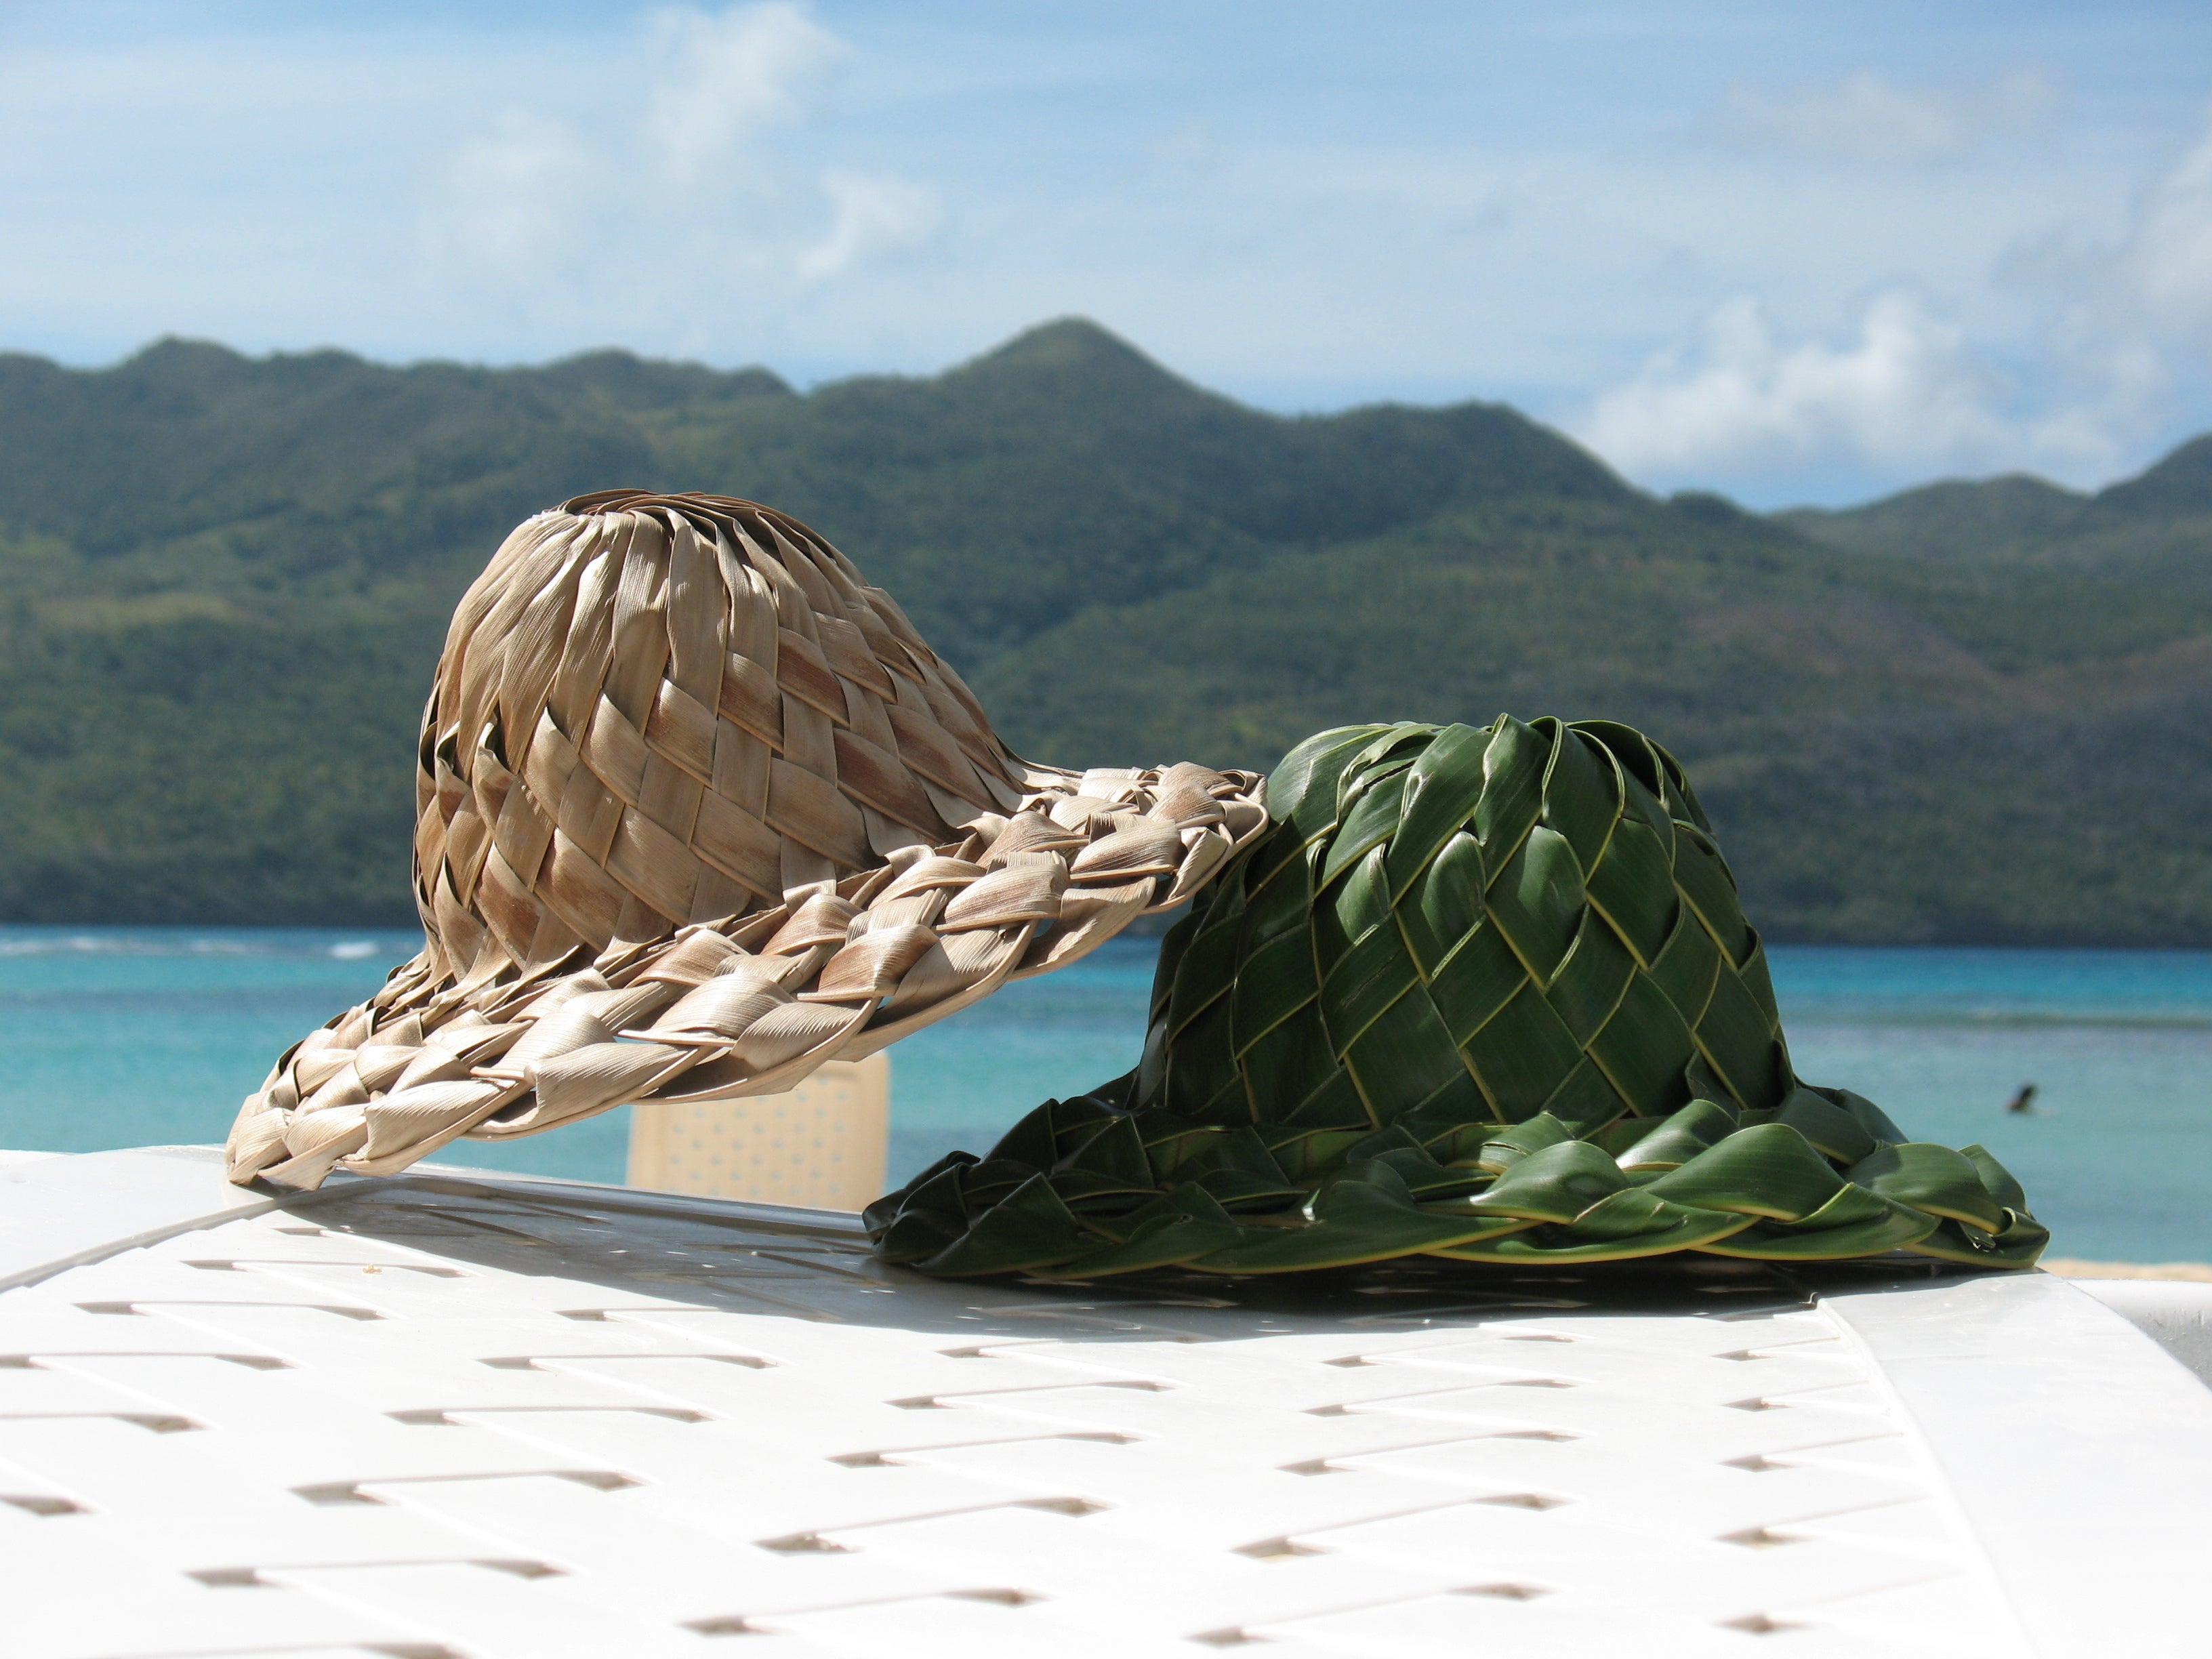 Handmade Hats in República Dominicana